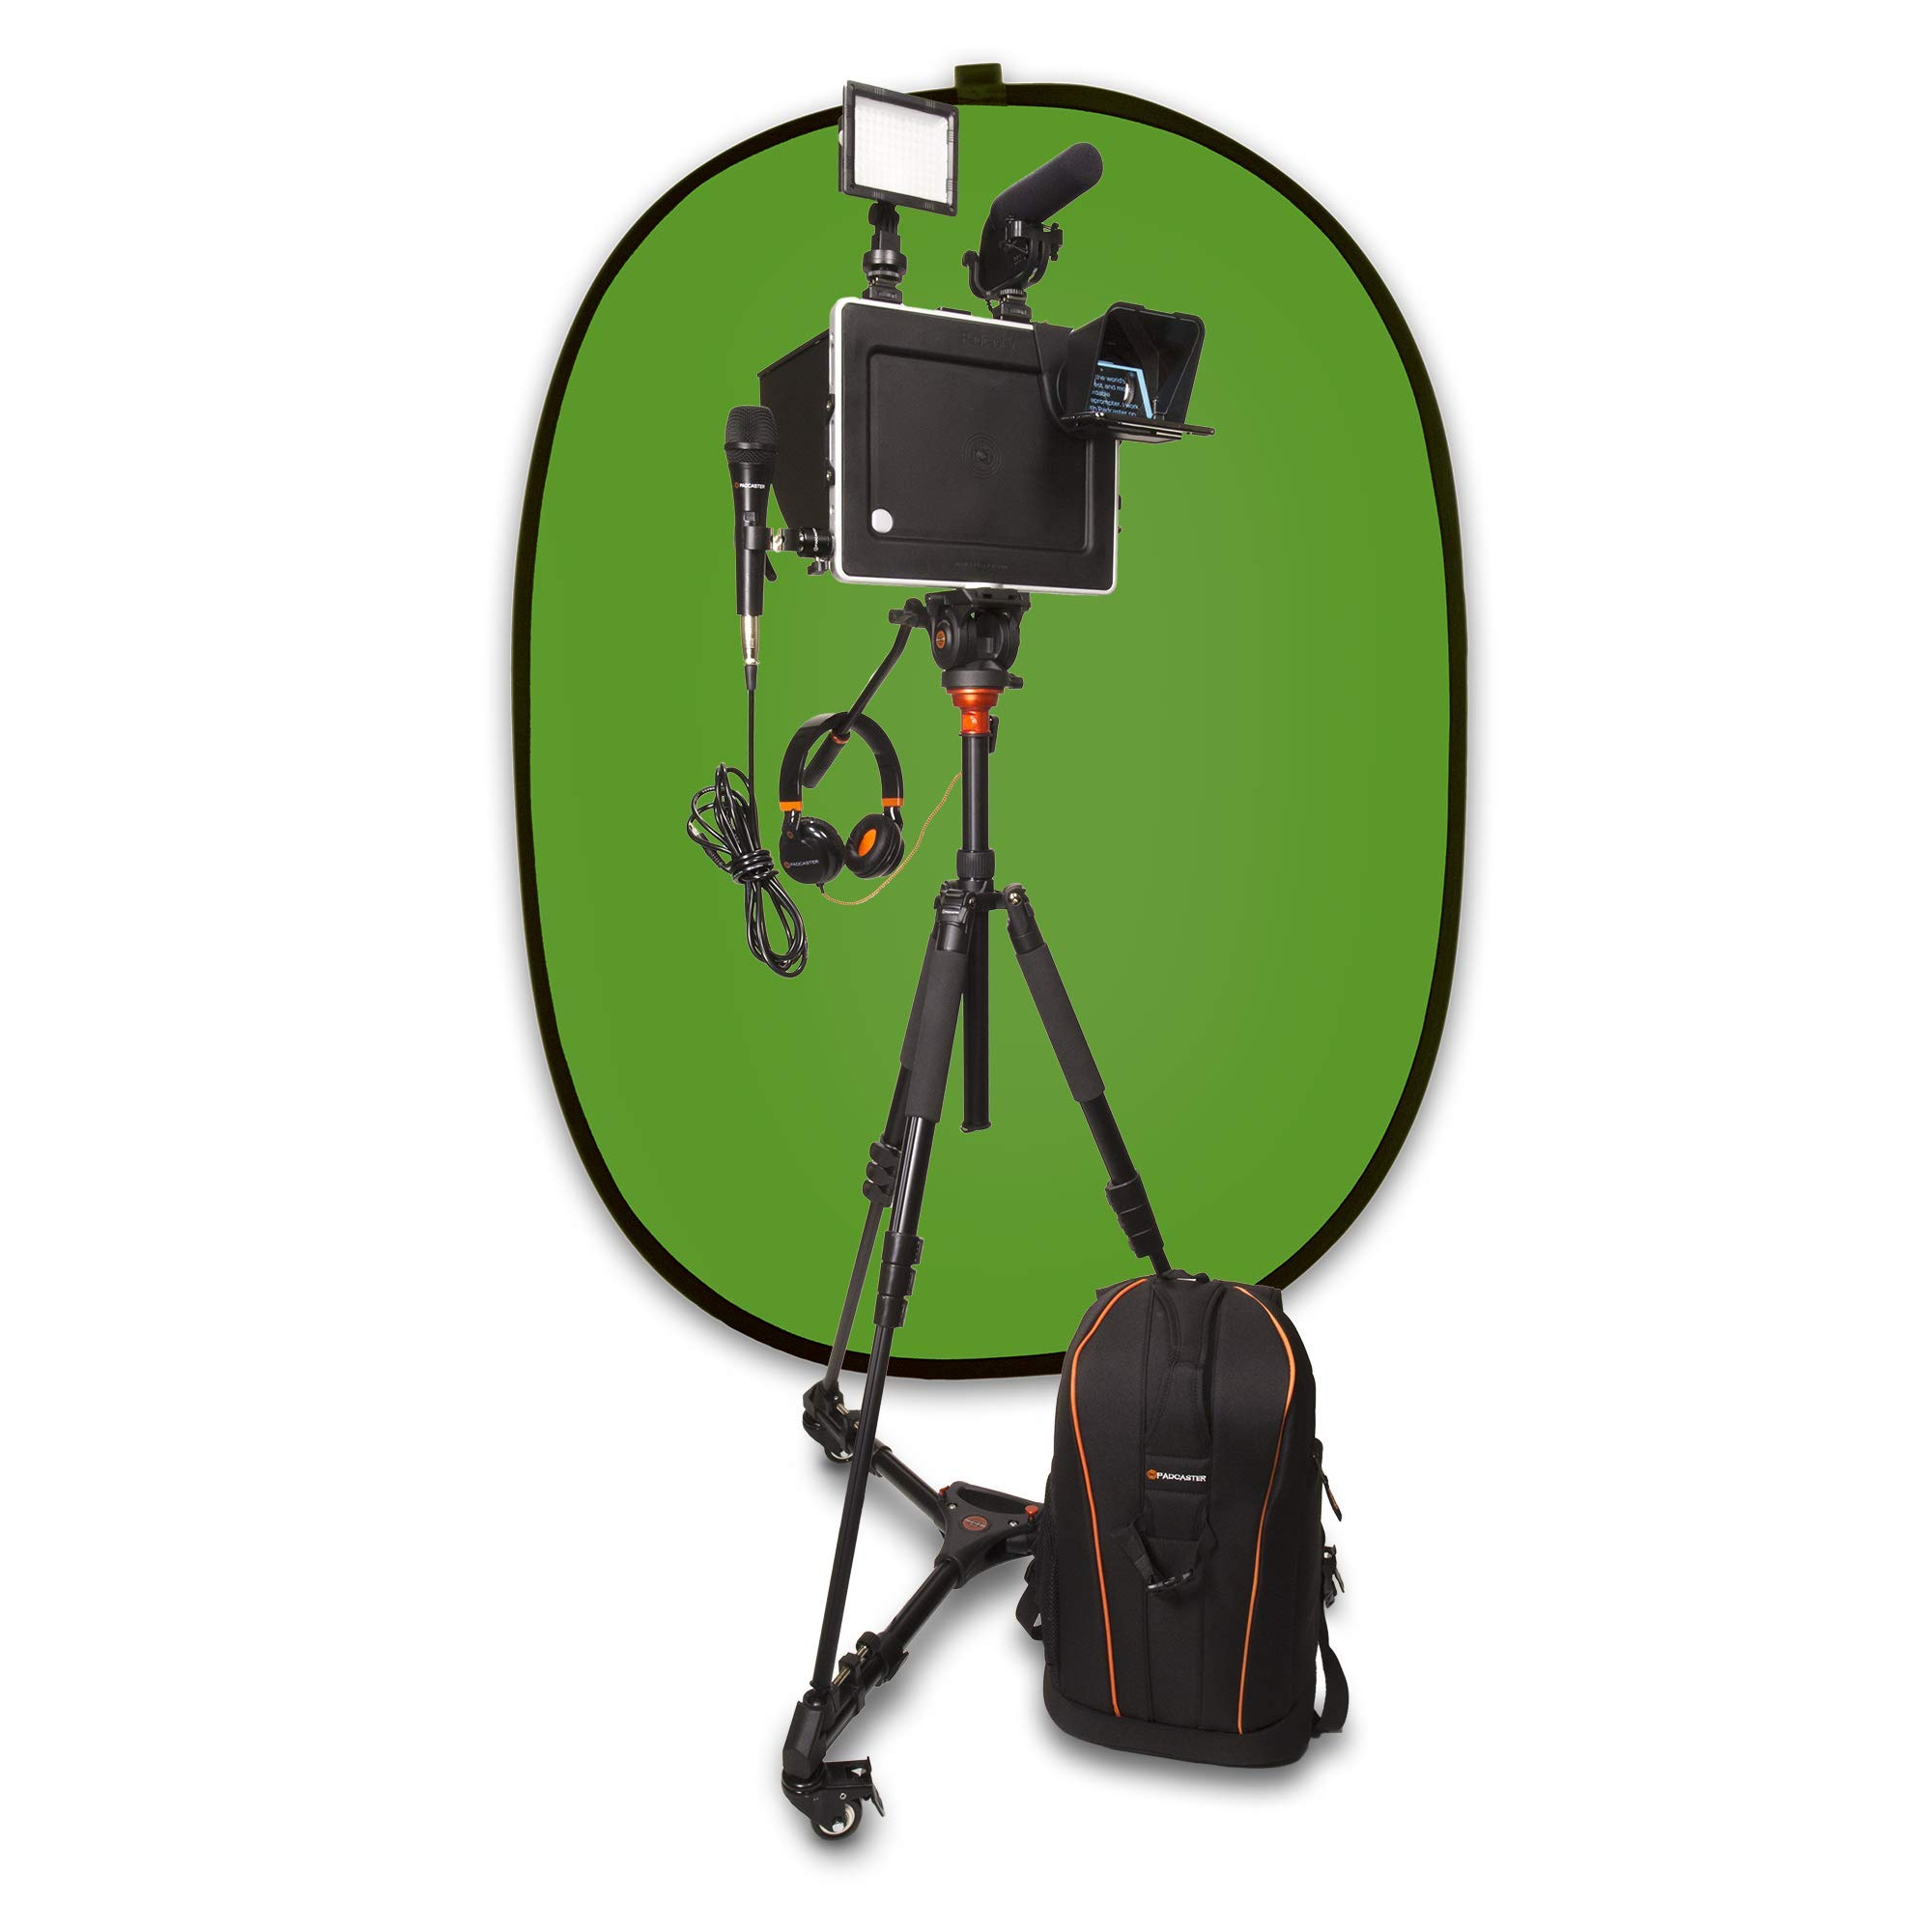 The Padcaster Studio, Full Video Production Studio for iPads by PADCASTER